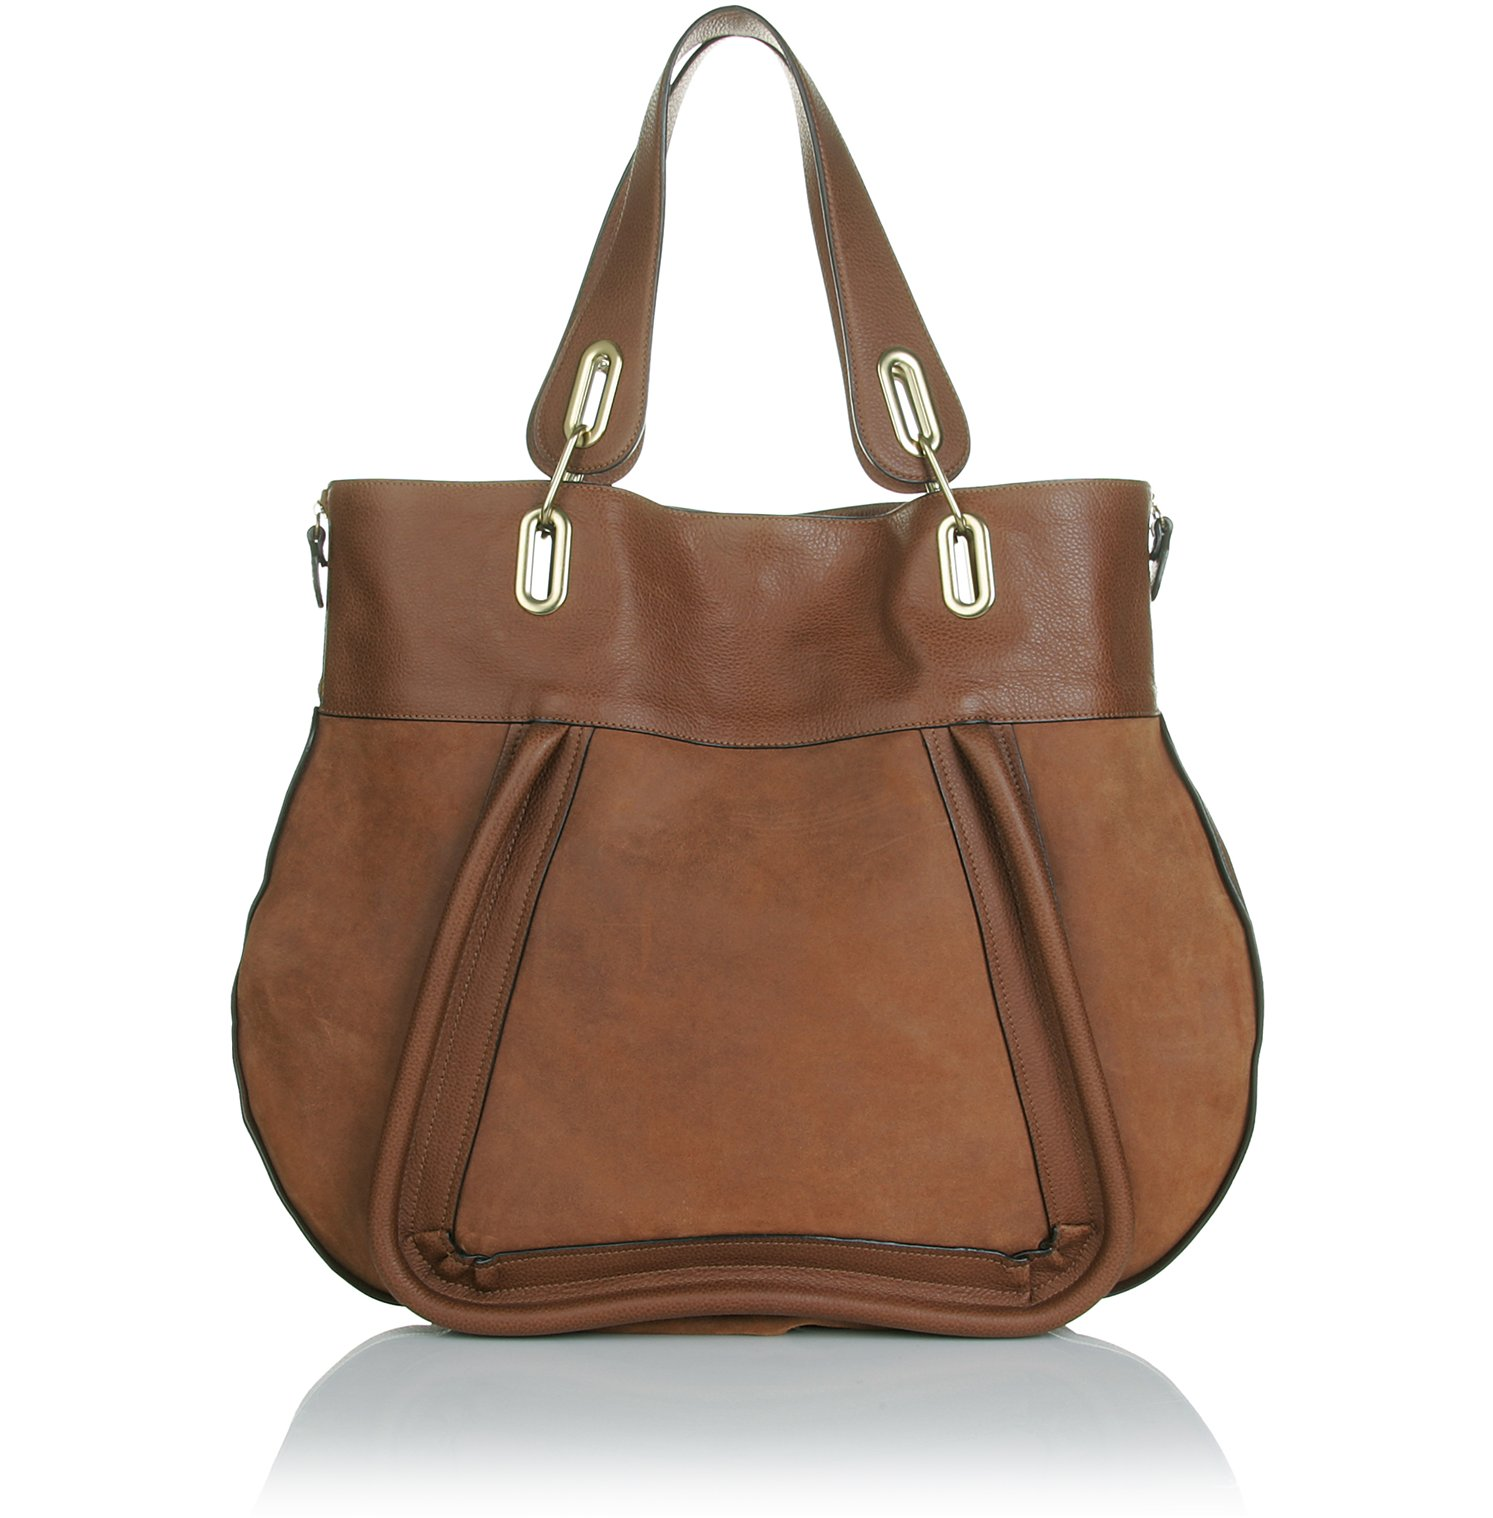 Chlo¨¦ Paraty Large Leather Tote in Brown (tan) | Lyst